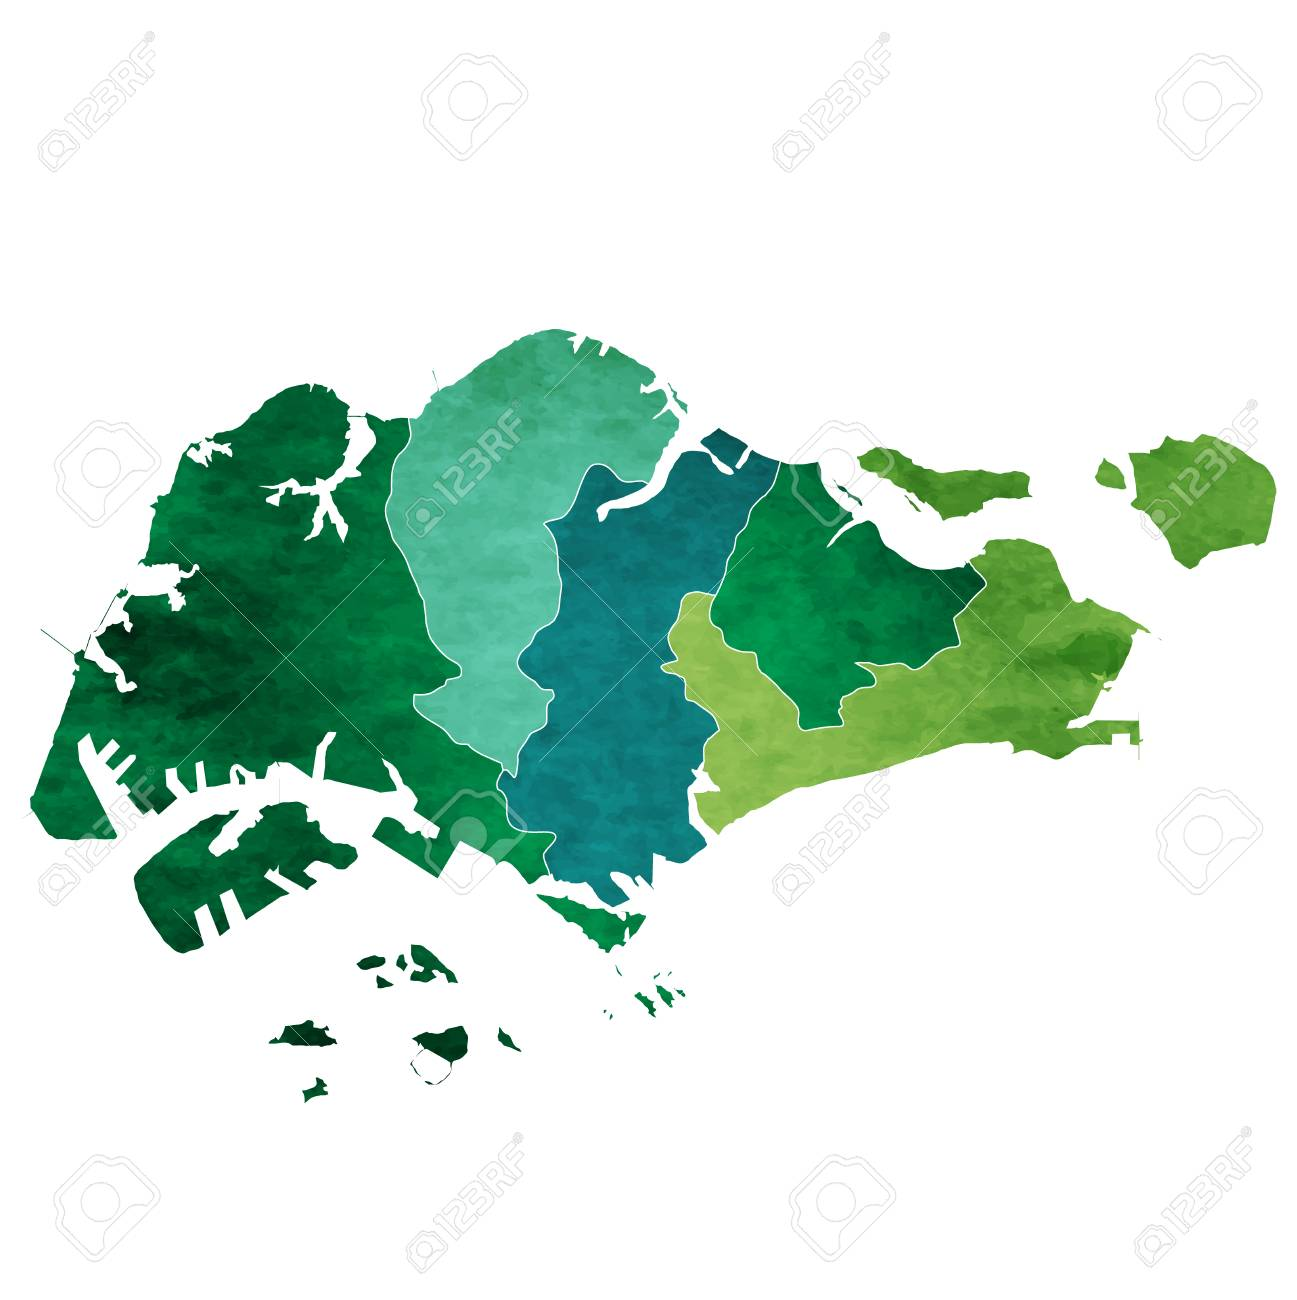 Singapore World Map Country Icon Royalty Free Cliparts Vectors And